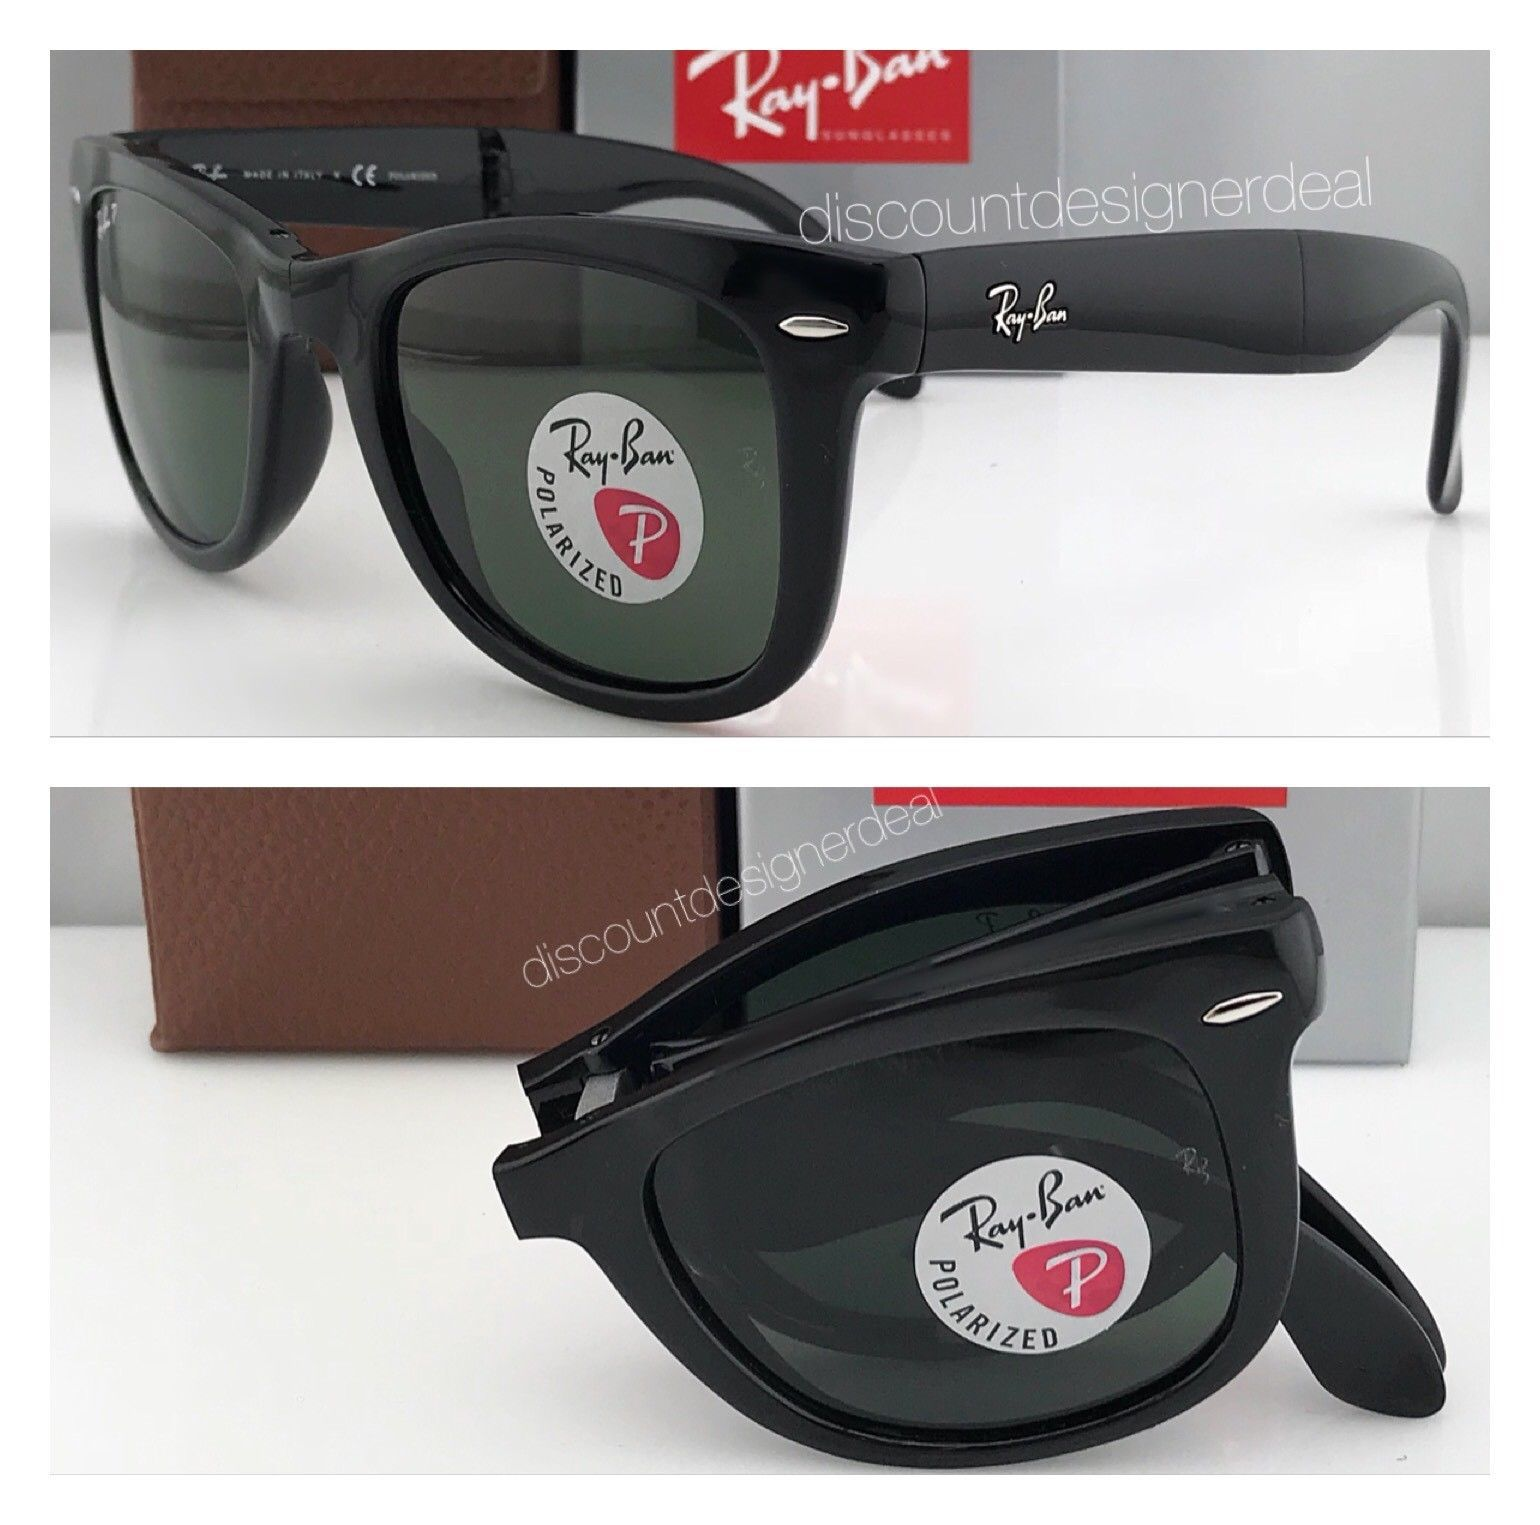 f8945dd0fa Ray Ban Classic Black Wayfarer Sunglasses ( RB 4105 Foldable ) - Buy Ray  Ban Classic Black Wayfarer Sunglasses ( RB 4105 Foldable ) Online at Low  Price - ...